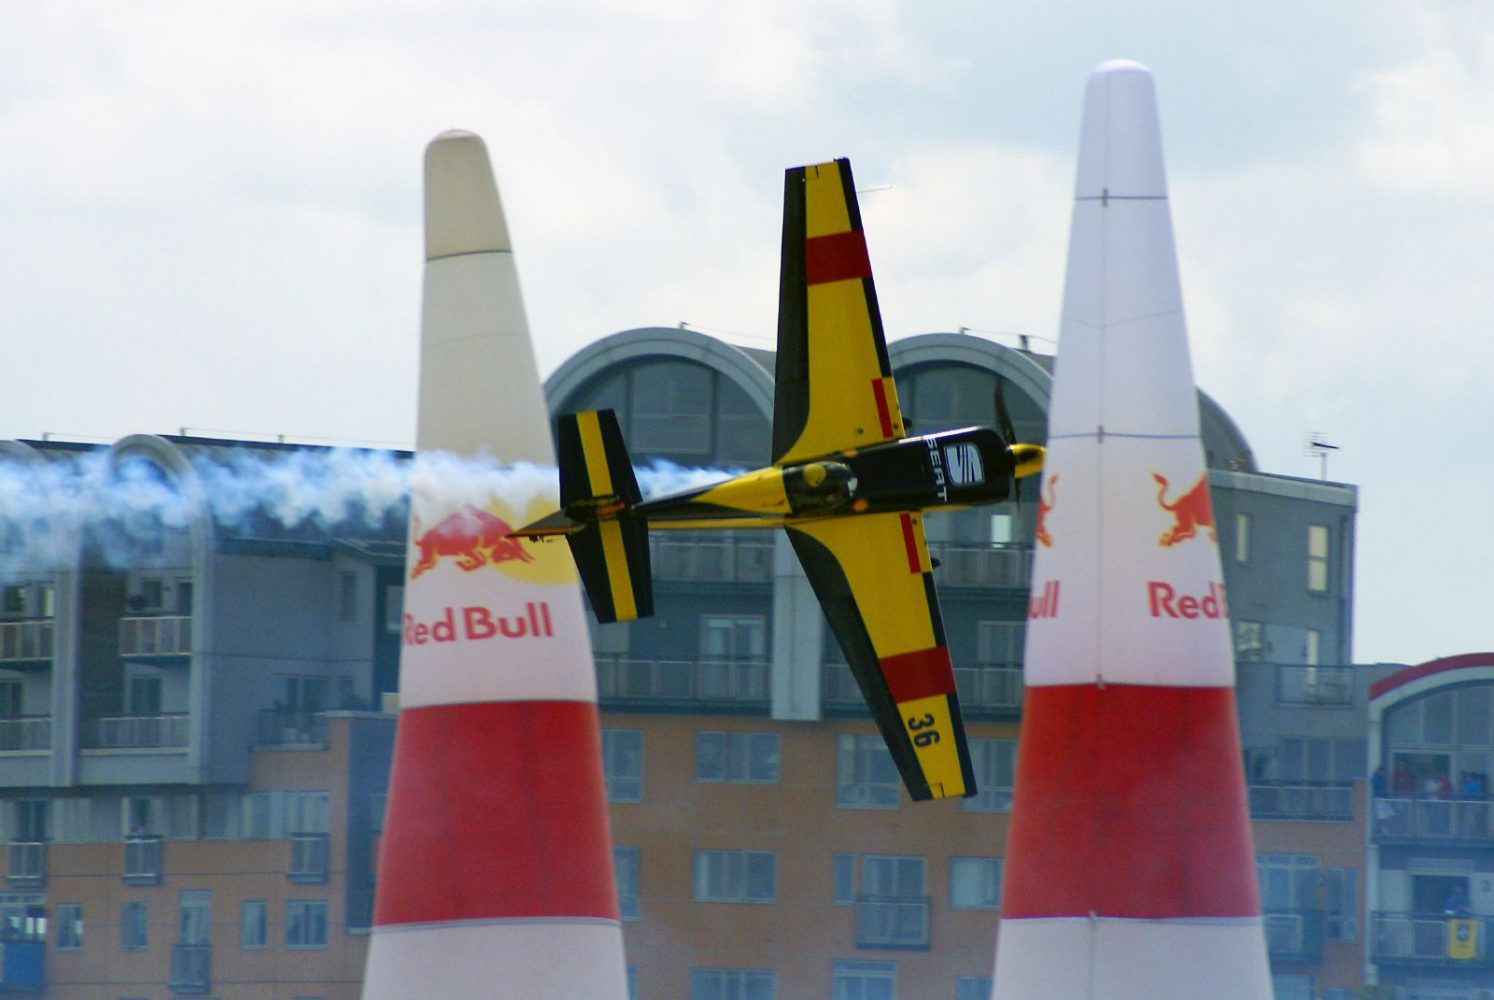 Red Bull World Air Race Championships